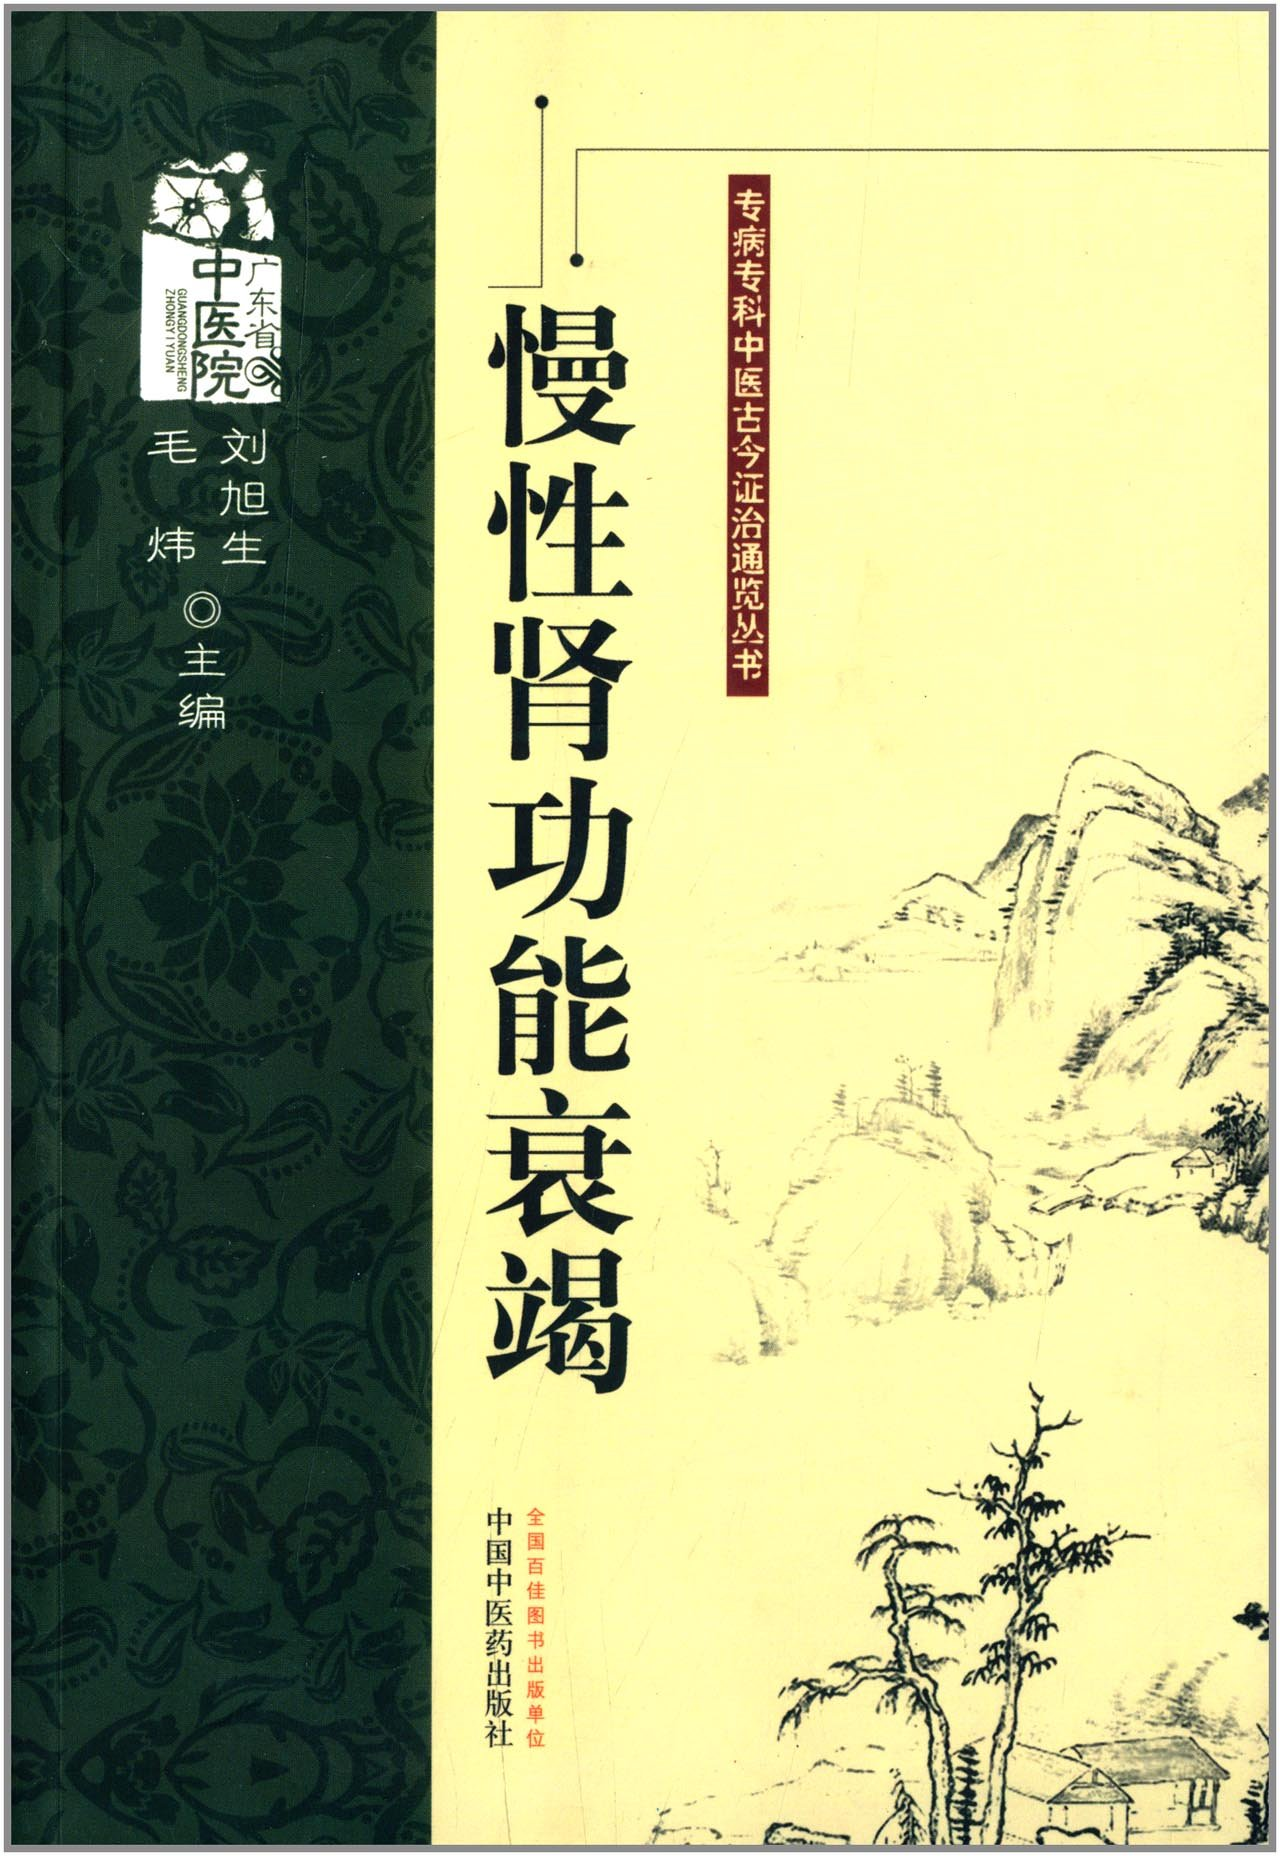 Chronic Renal Failure Specifically Ancient Disease Specialist Tcm Treatment Browse Through Books Chinese Edition Liu Xu Sheng Mao Wei Zhu 9787513211666 Amazon Com Books